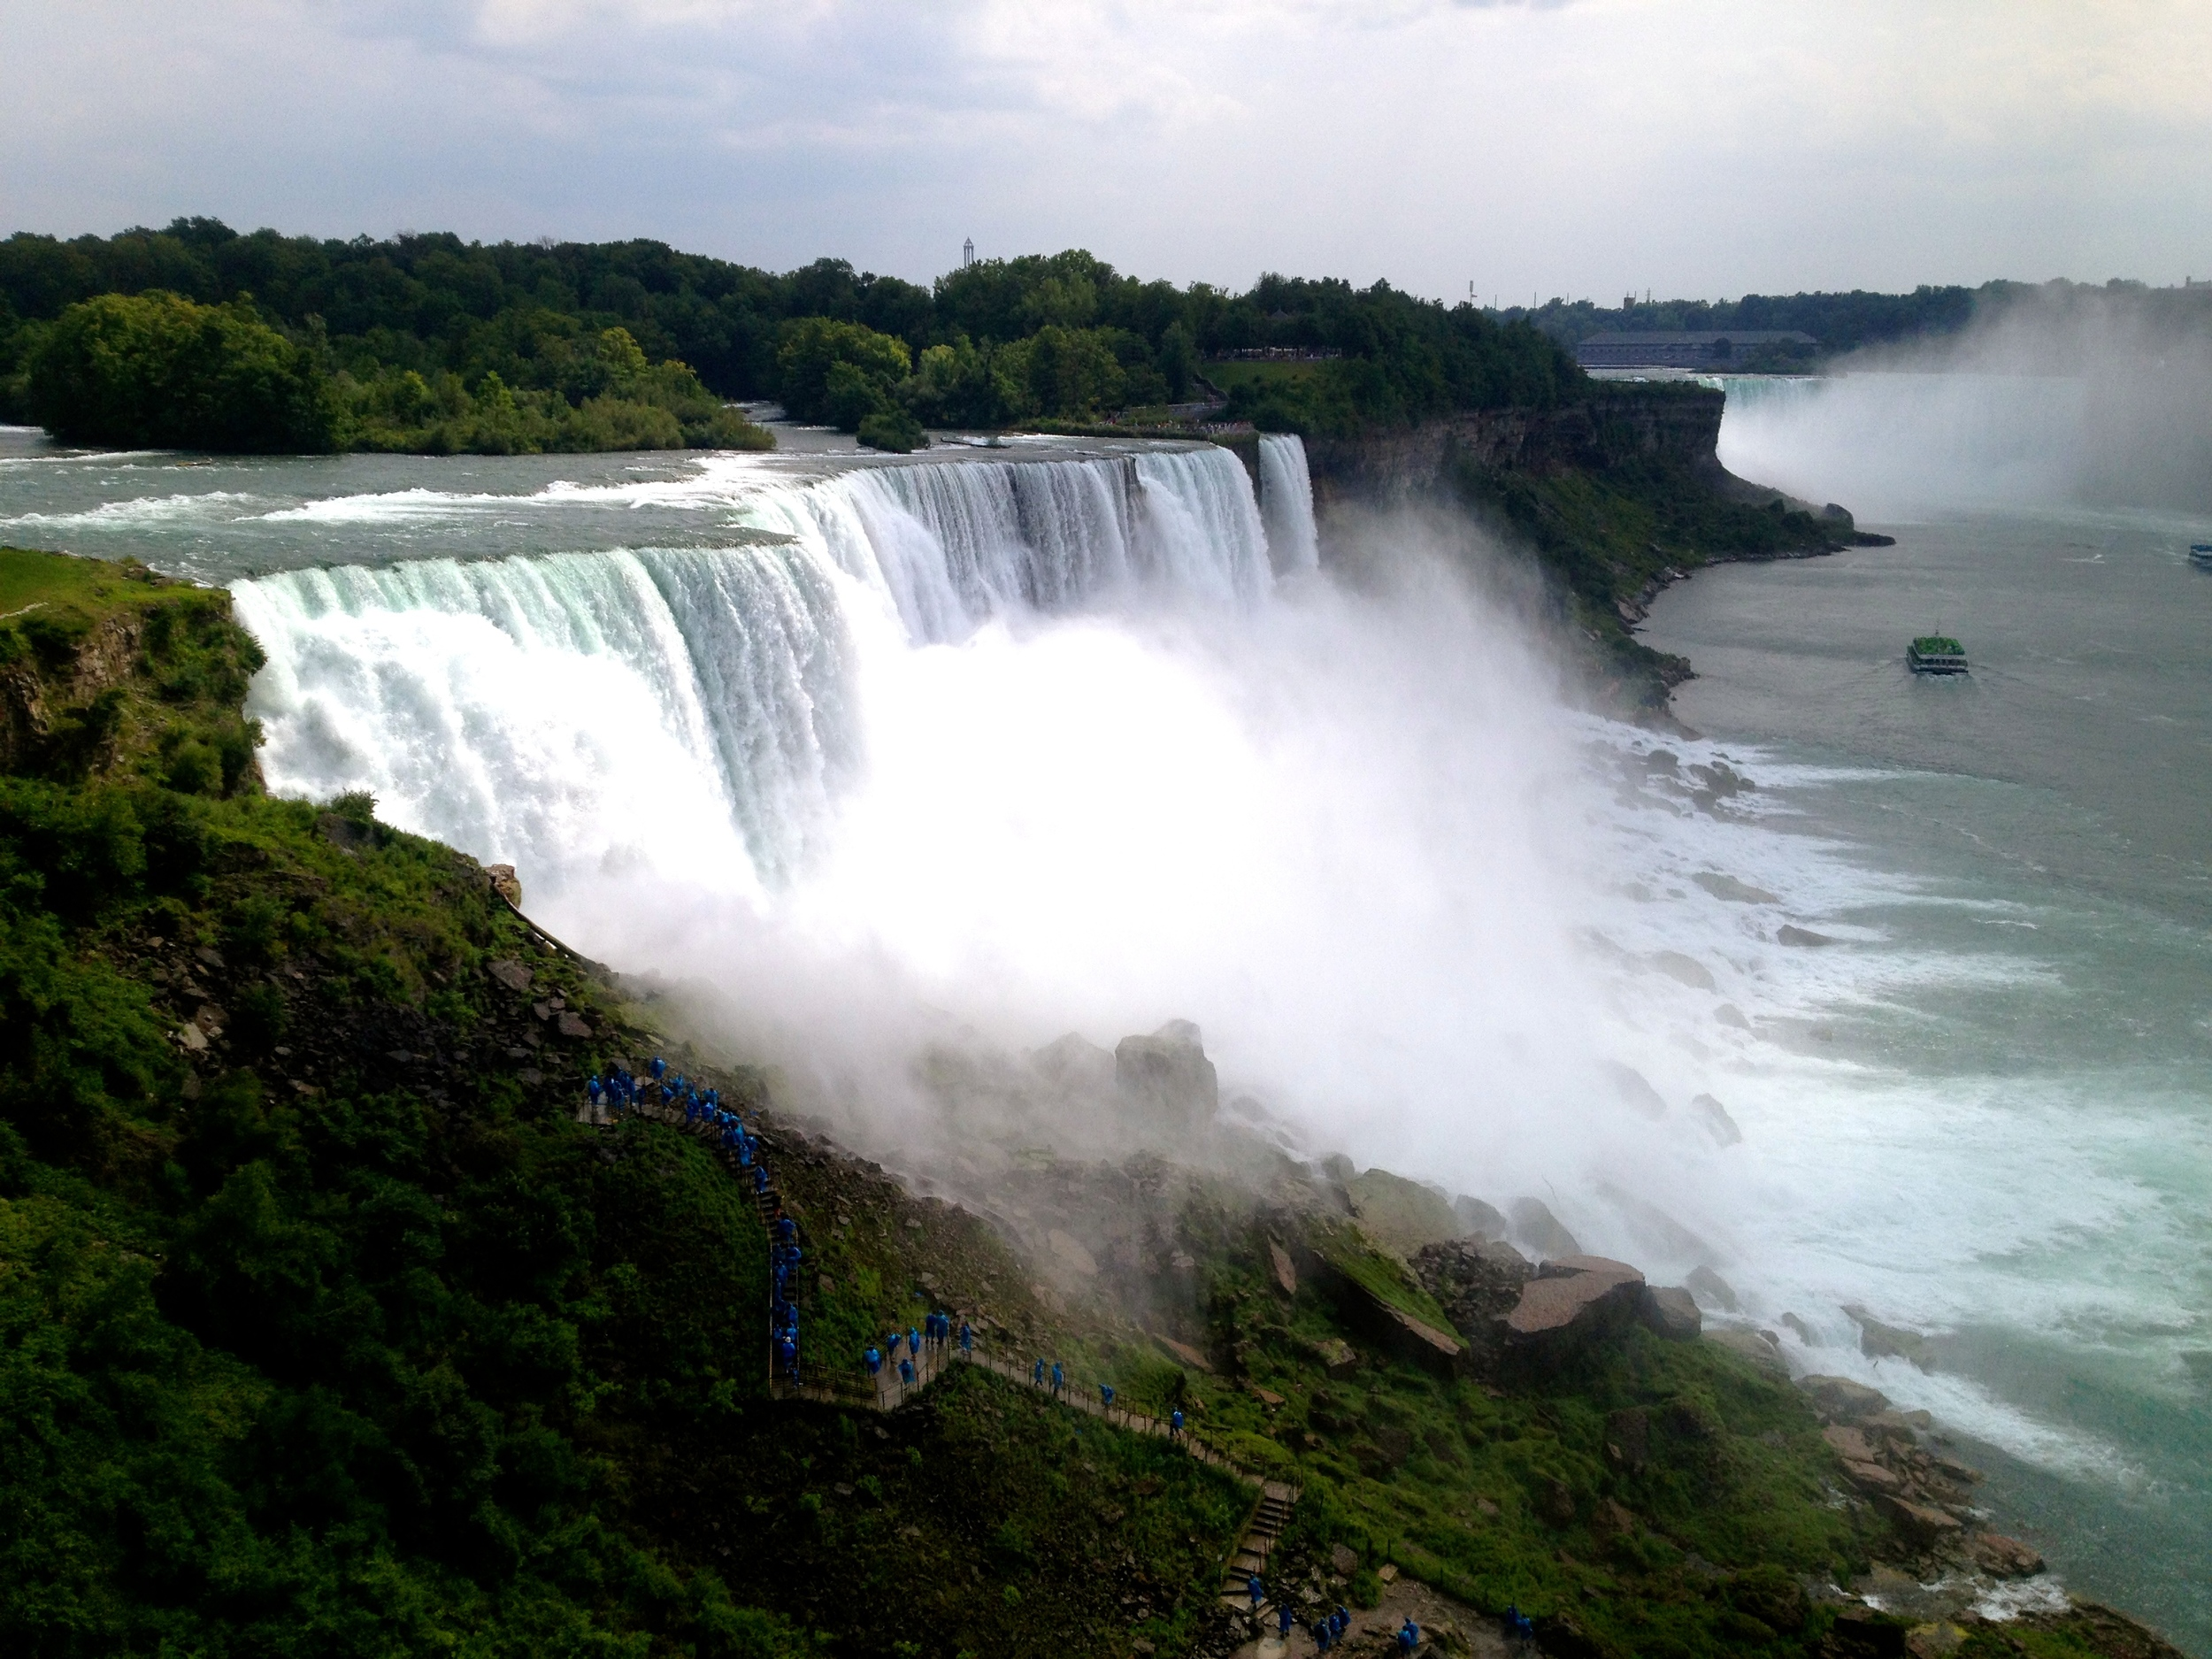 Here is a view of some of the falls... just to give you an idea of how big it really is, see those blue dots in the bottom left of the photo? Those are people.